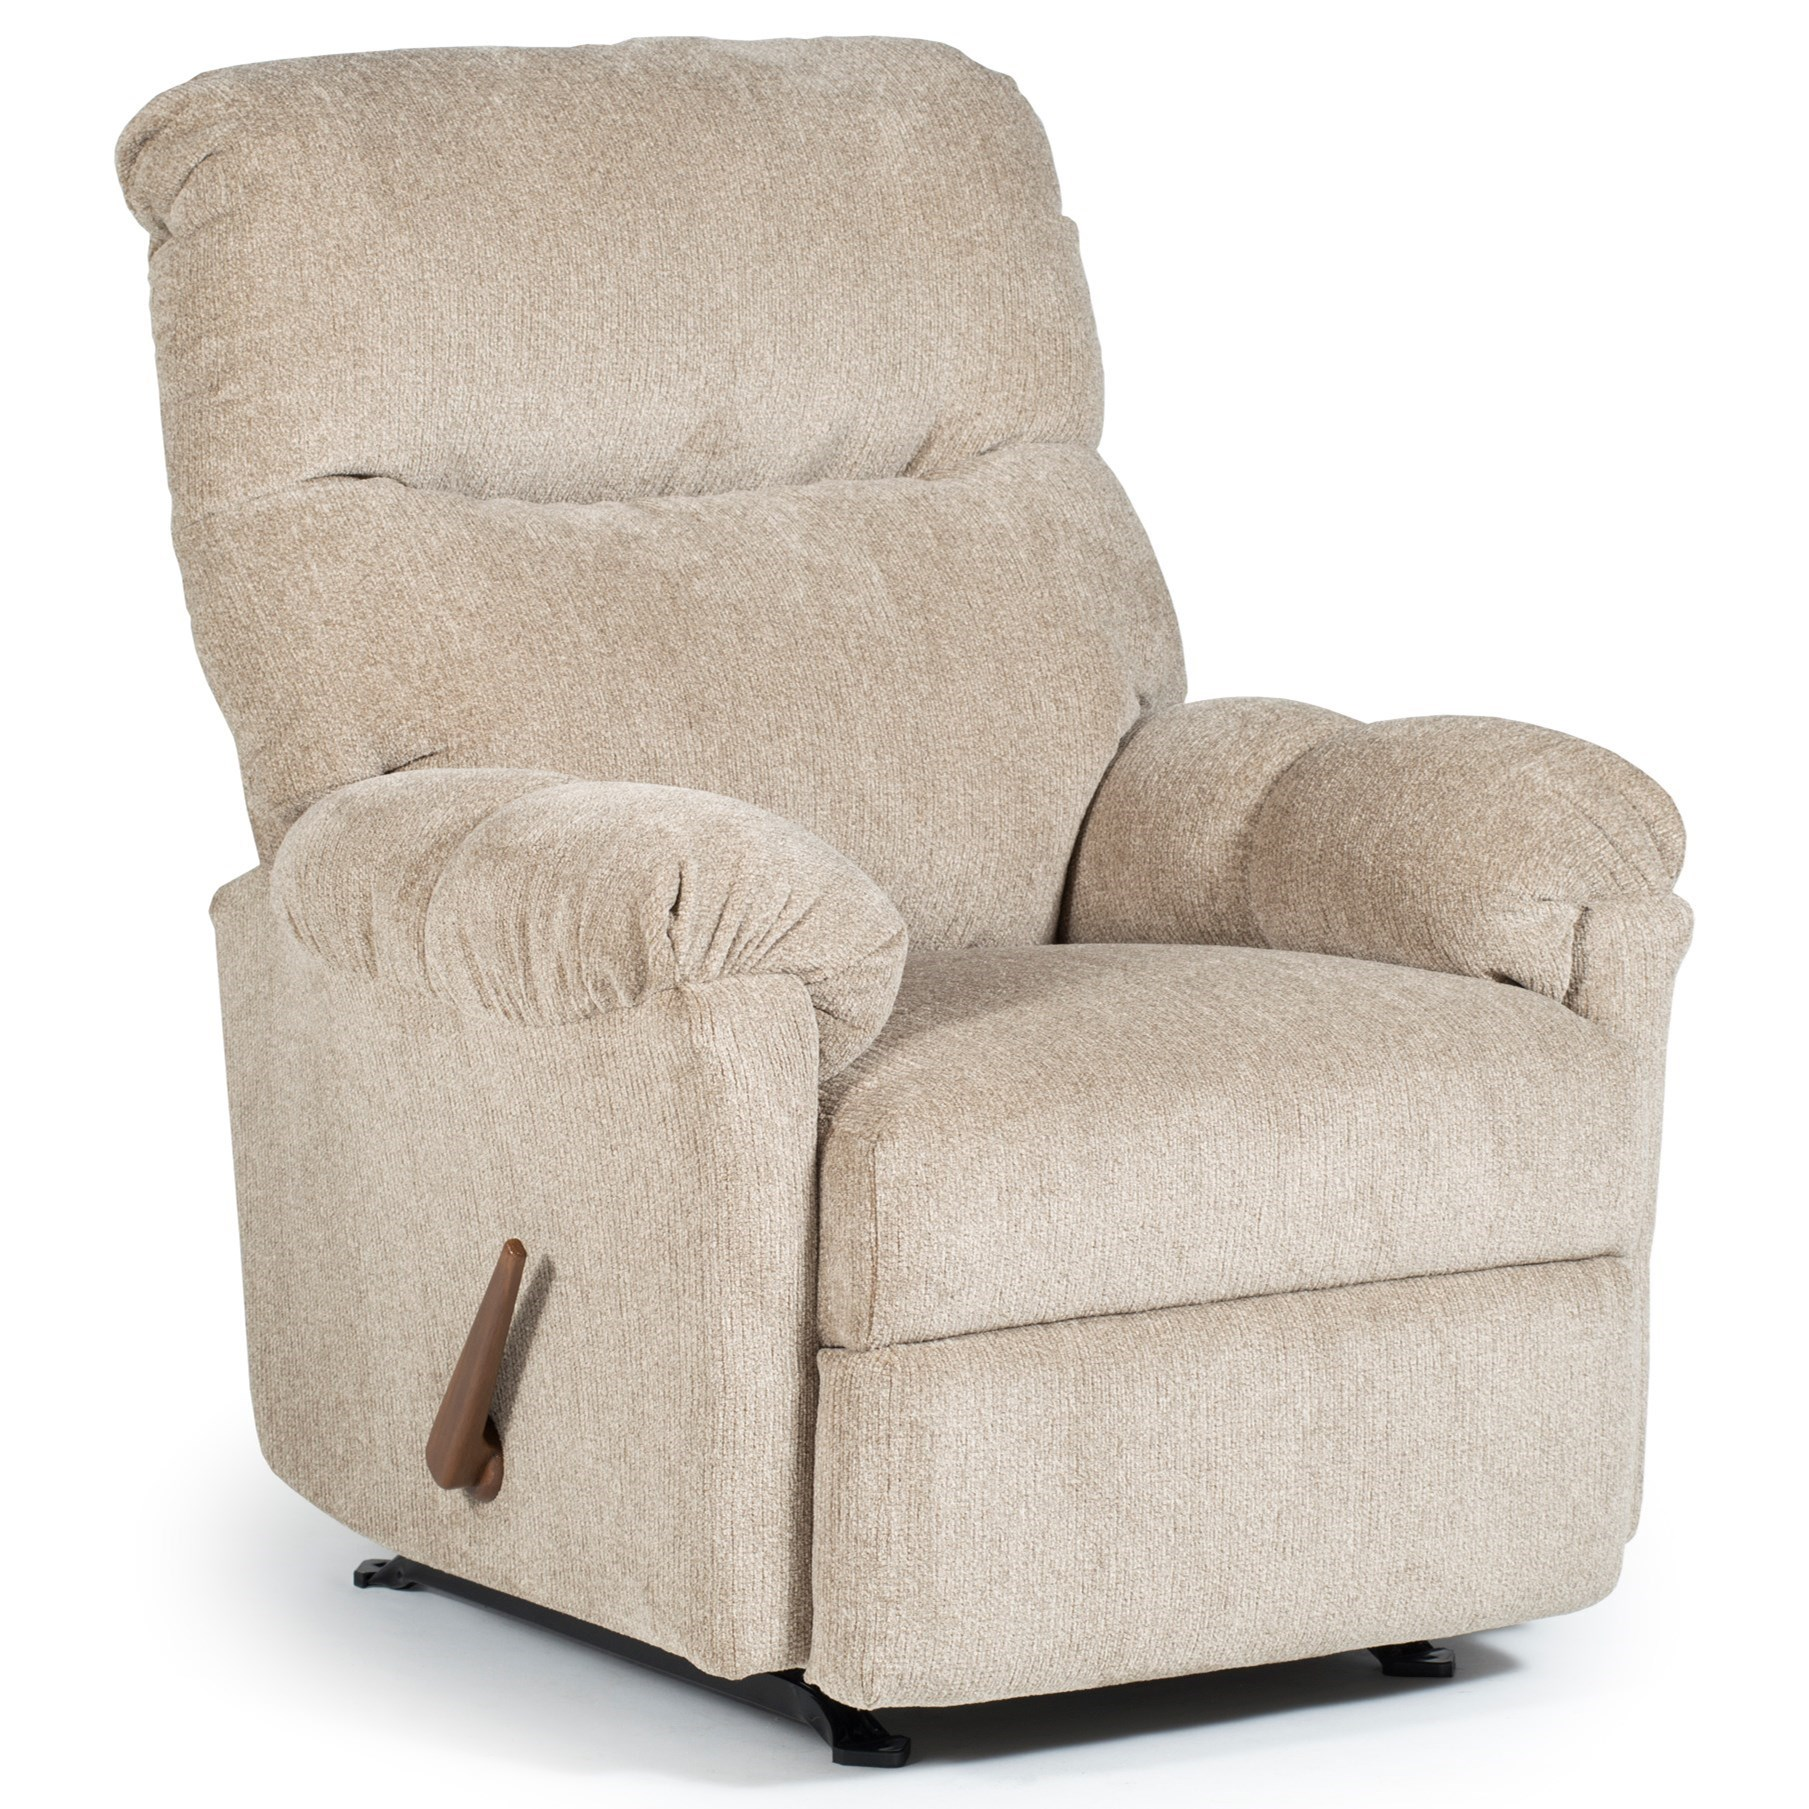 Recliner Rocking Chair Best Home Furnishings Medium Recliners Balmore Swivel